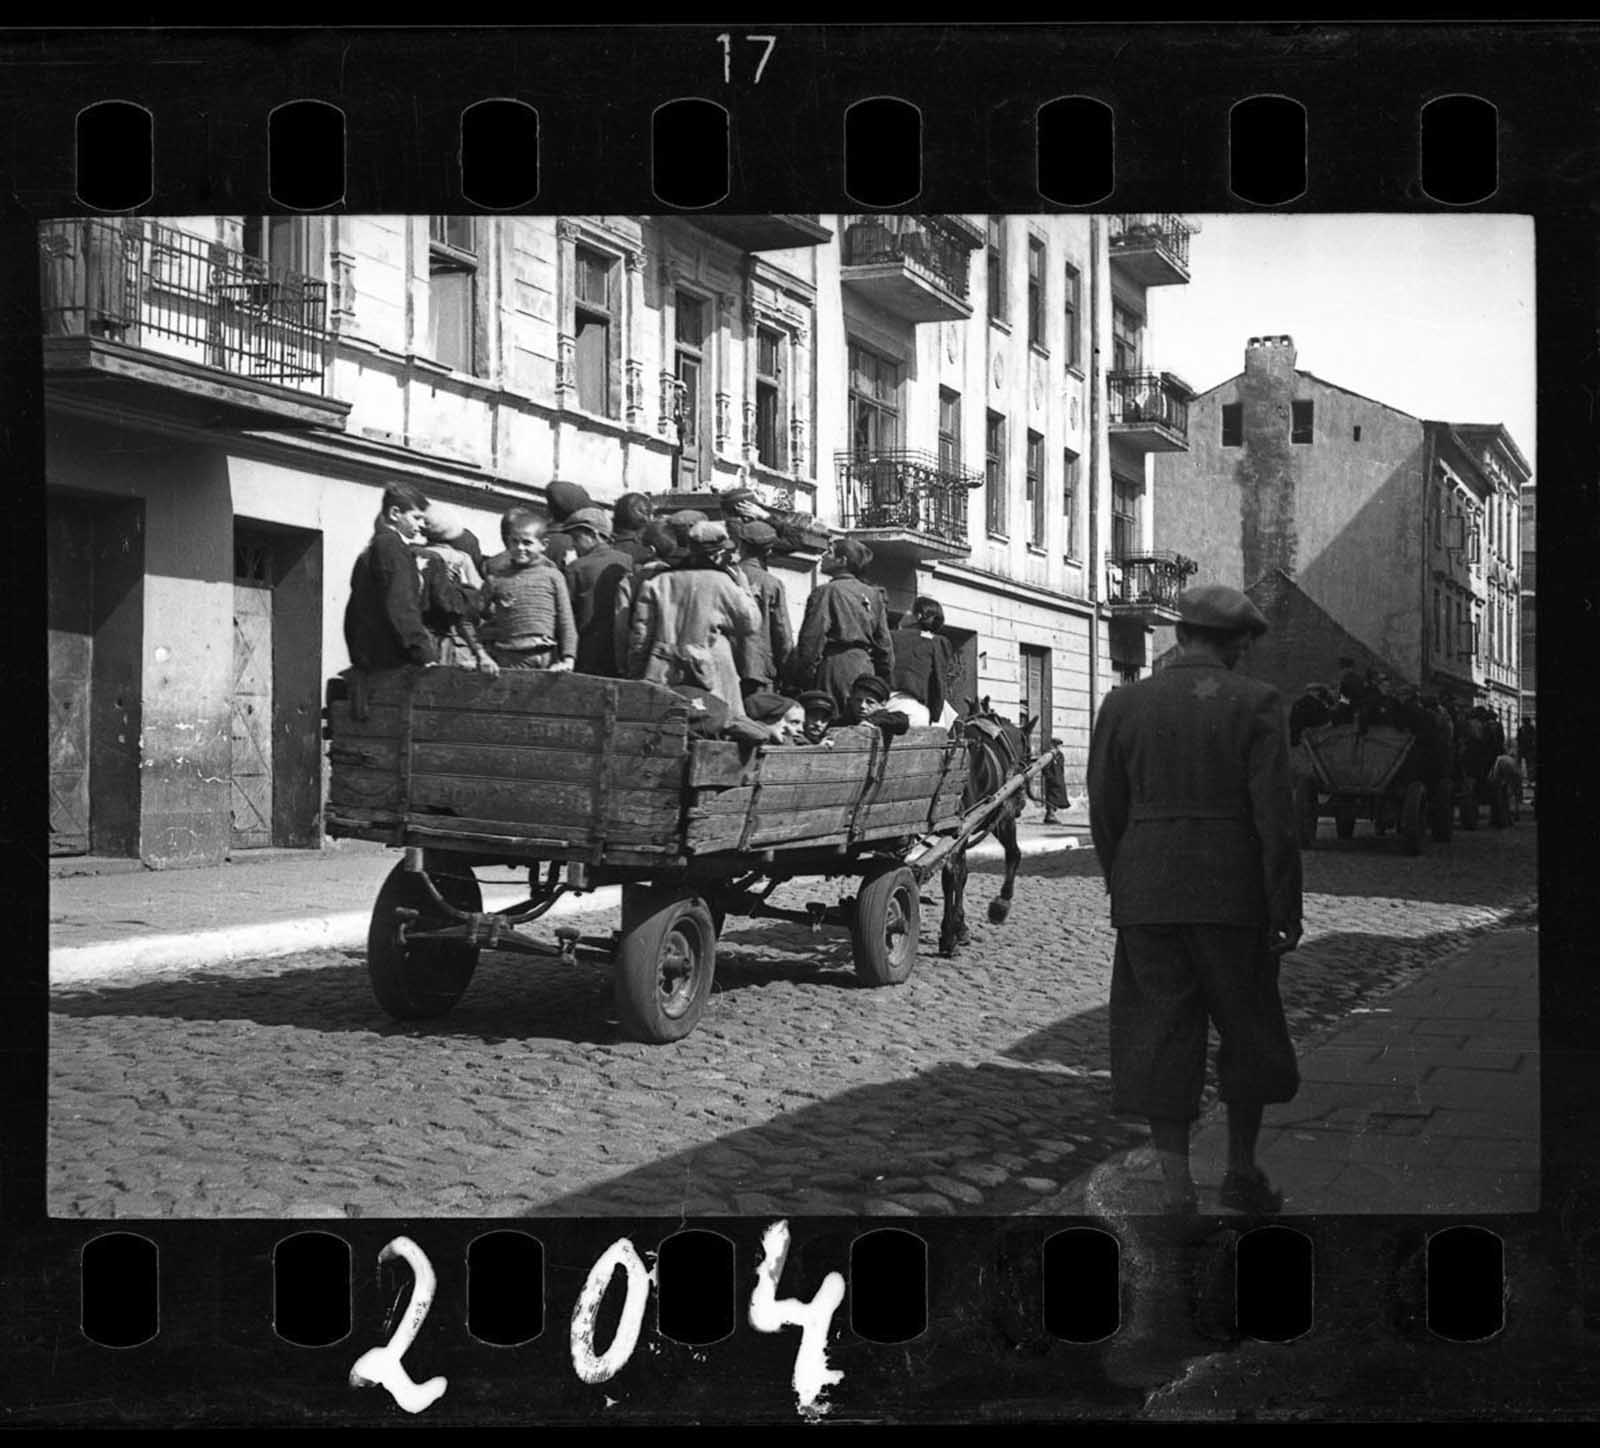 Children being transported to Chelmno nad Nerem (renamed Kulmhof) death camp. 1942.